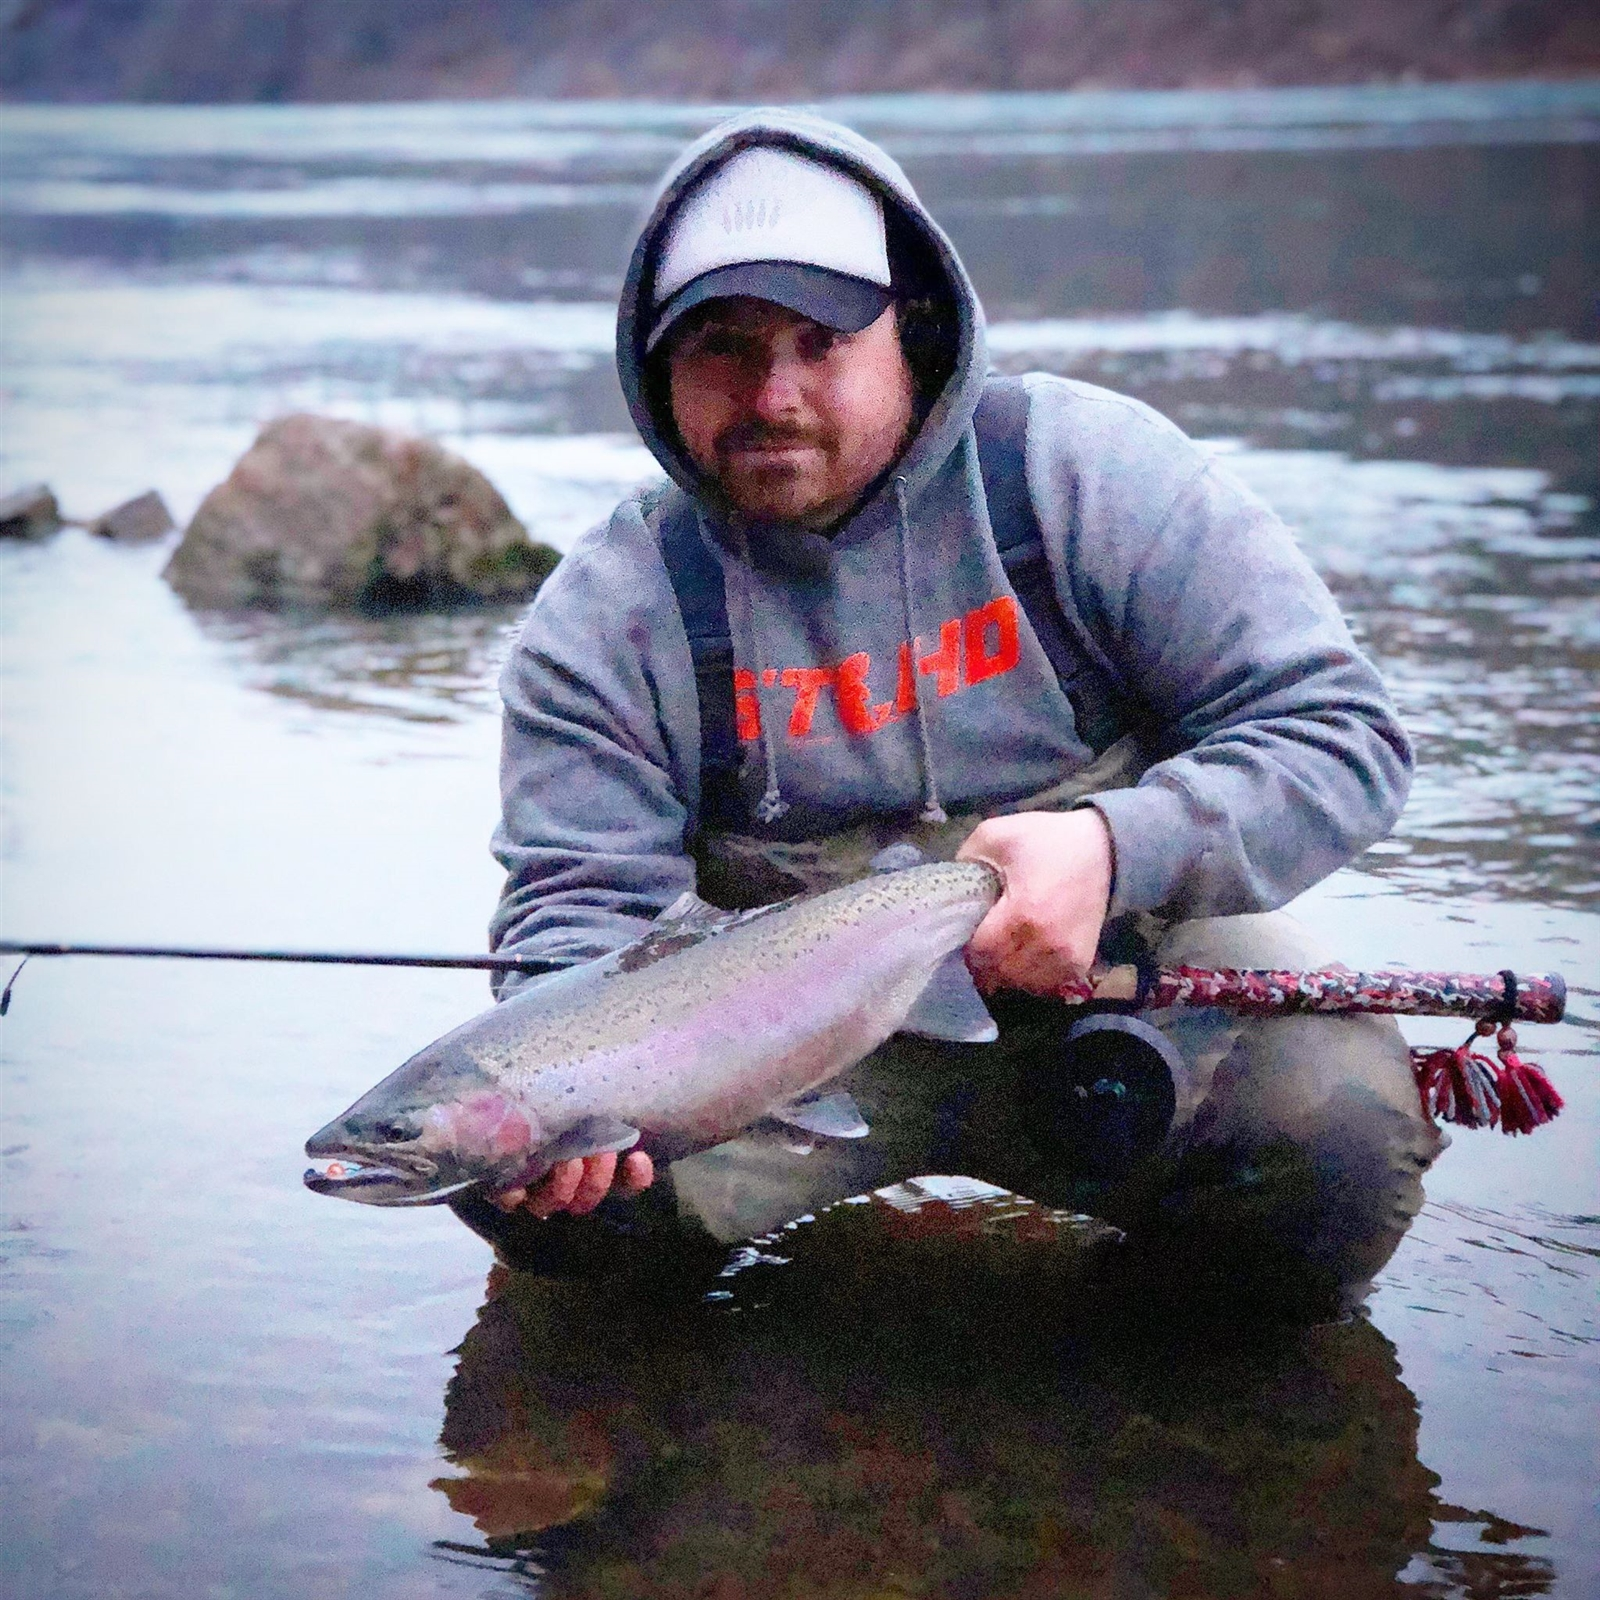 Capt. Nick Calandrelli of Lewiston reeled in this lower Niagara River steelhead while he fished a bead.